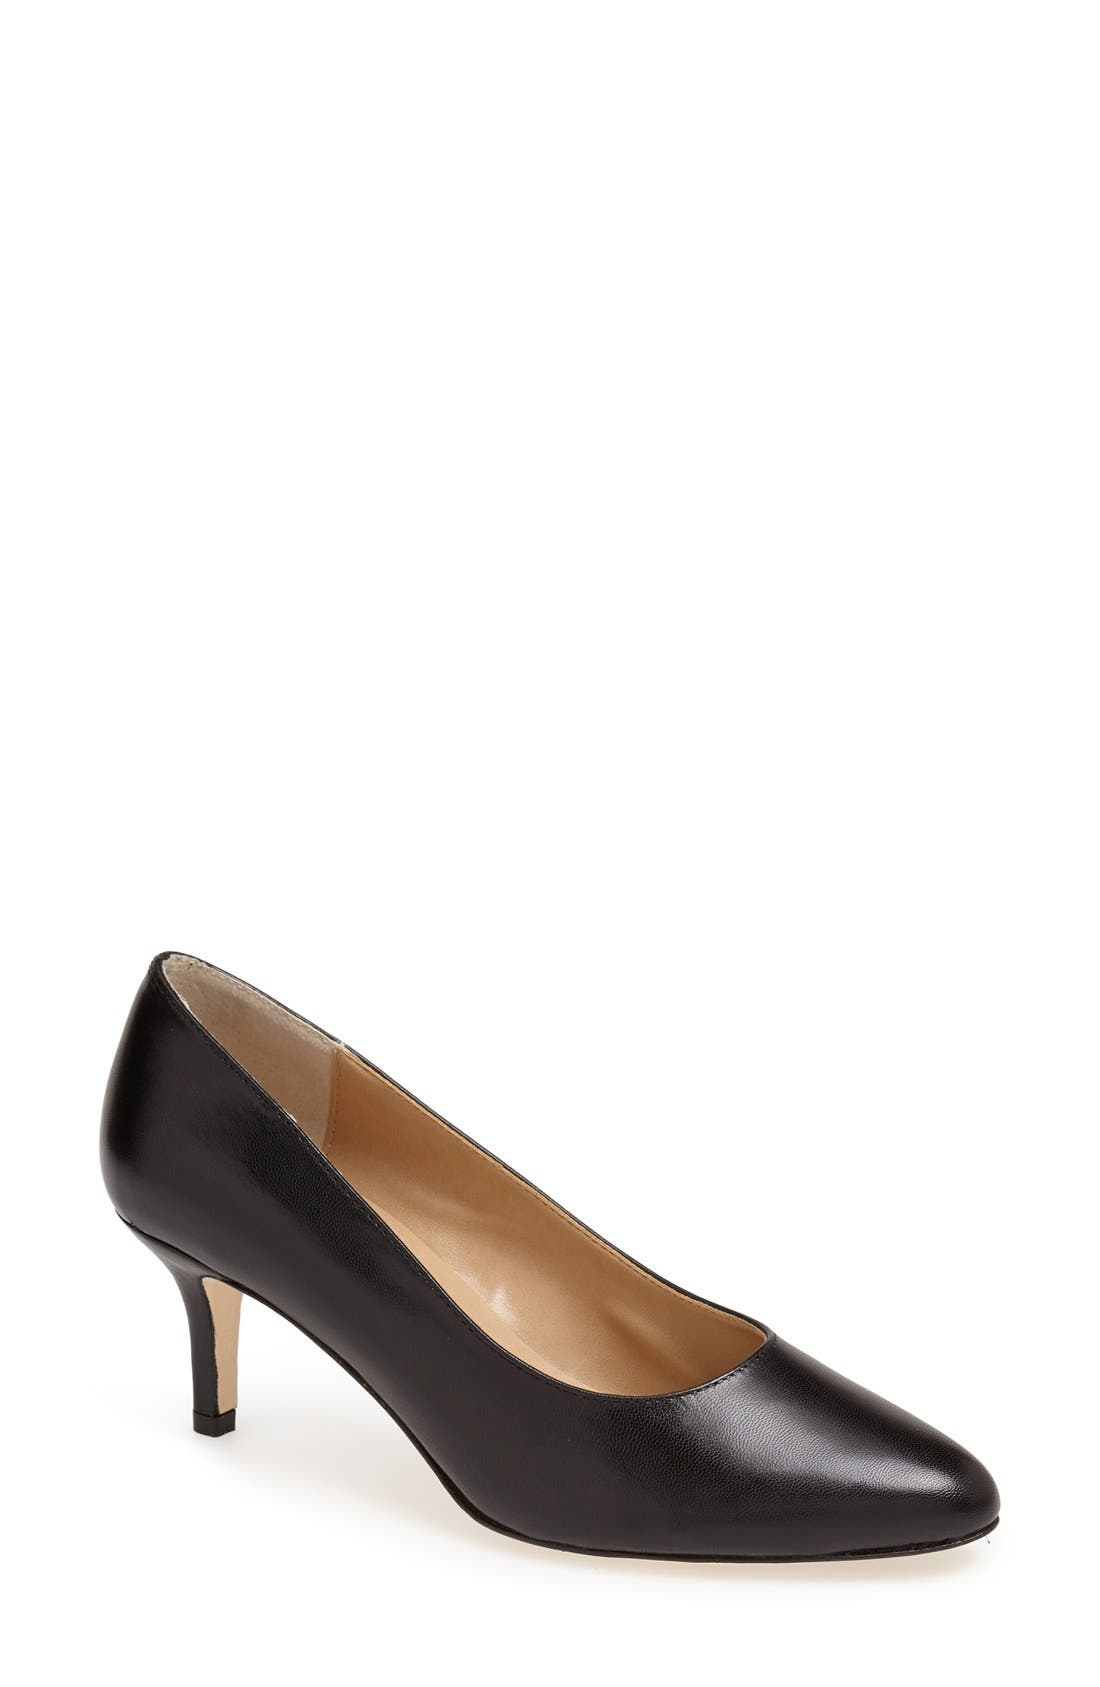 Main Image - VANELi 'Laureen' Leather Pump